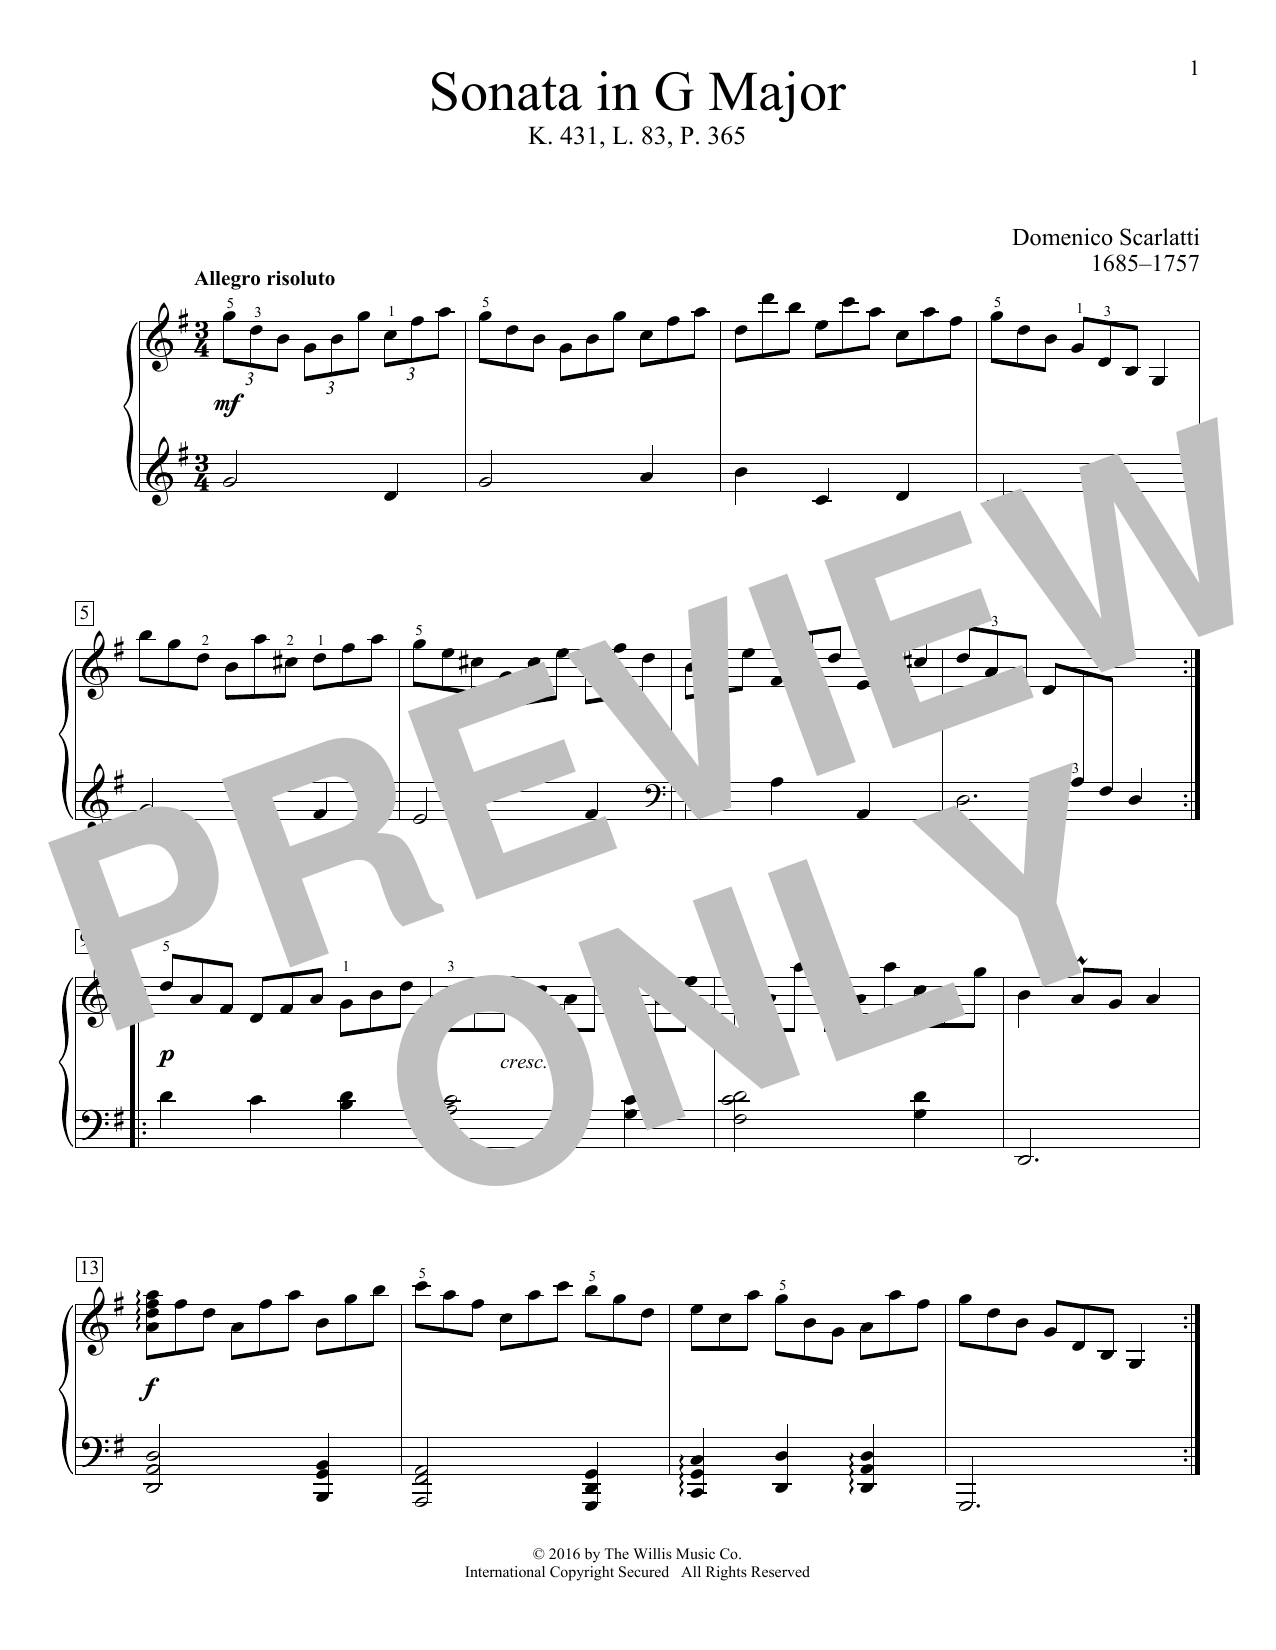 Sonata In G Major, K. 431, L. 83, P. 365 Sheet Music